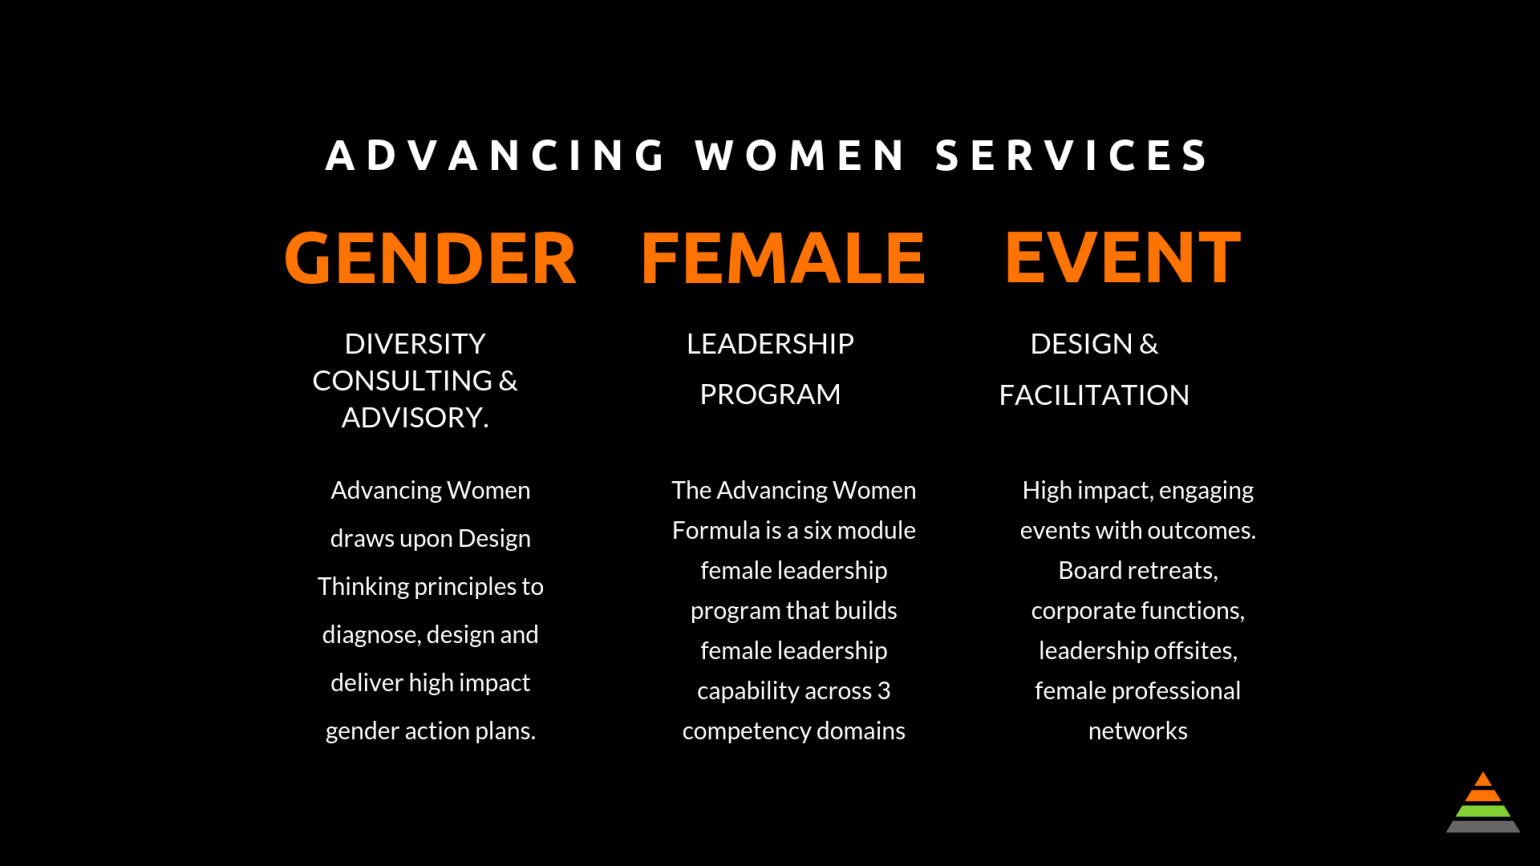 advancing women pitch deck 2019